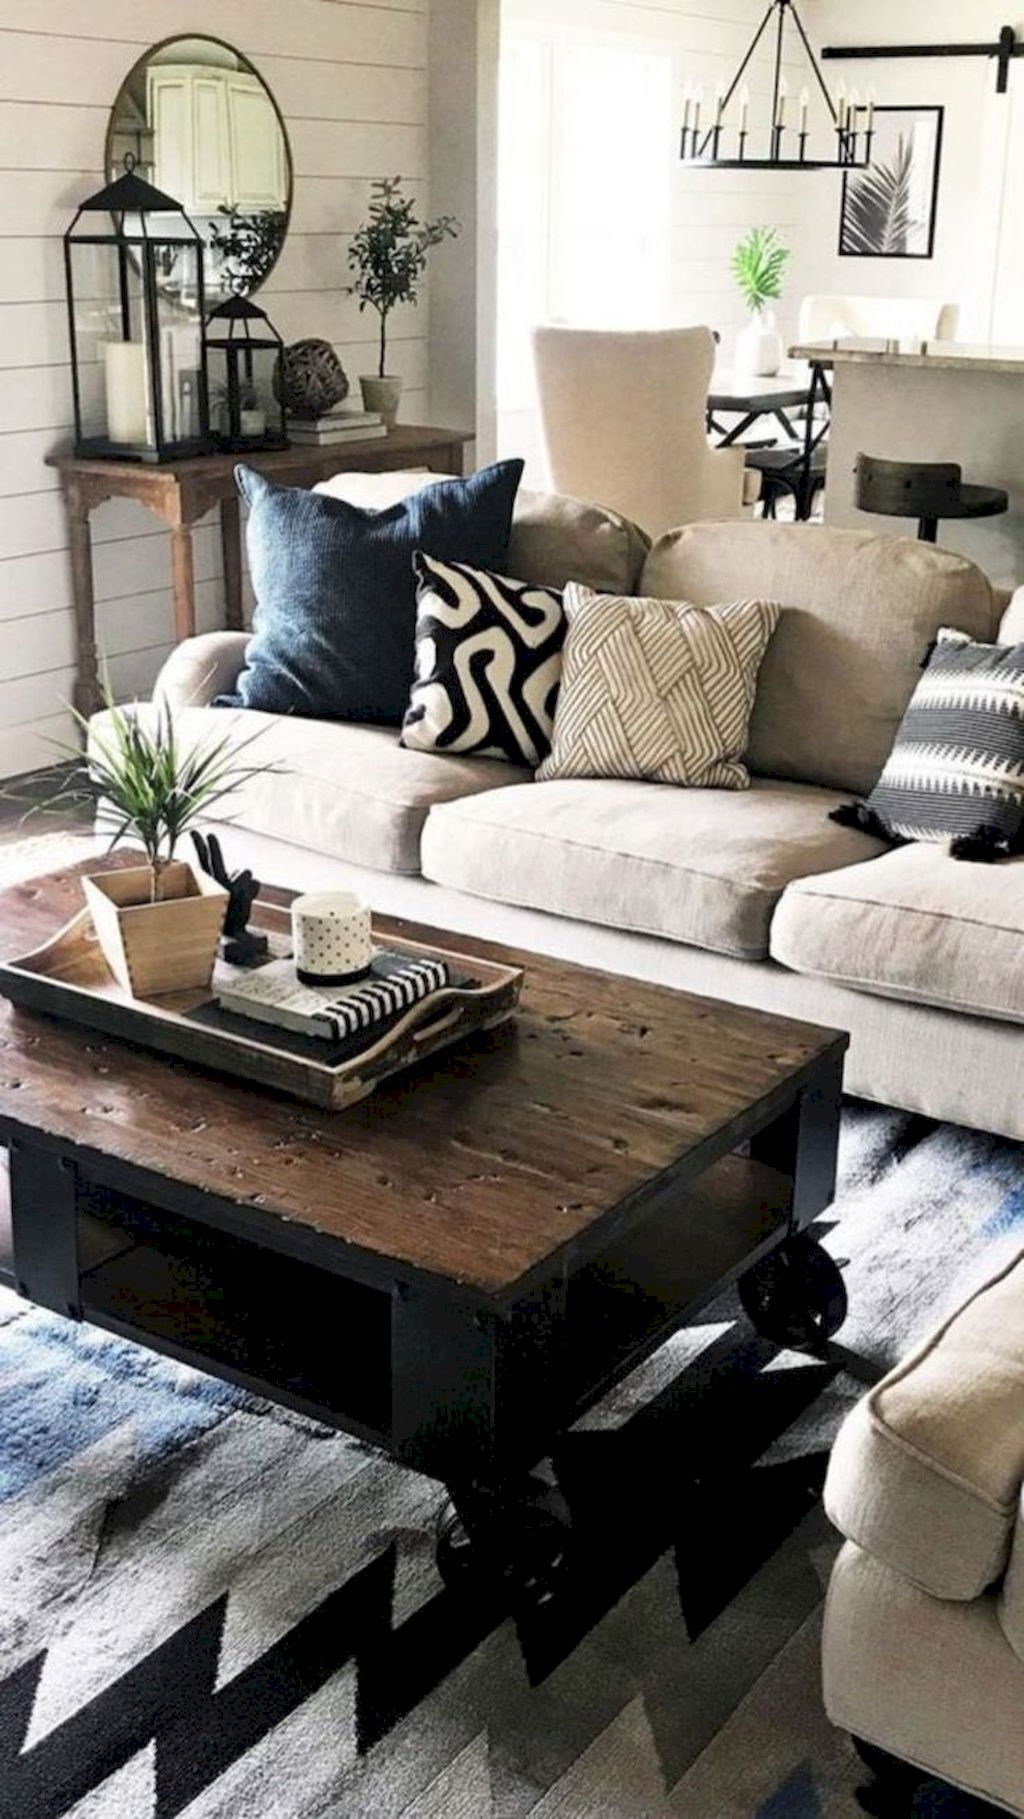 64 Cozy Farmhouse Living Room Decor Ideas With Images Farmhouse Decor Living Room Farmhouse Living Room Furniture Living Room Remodel